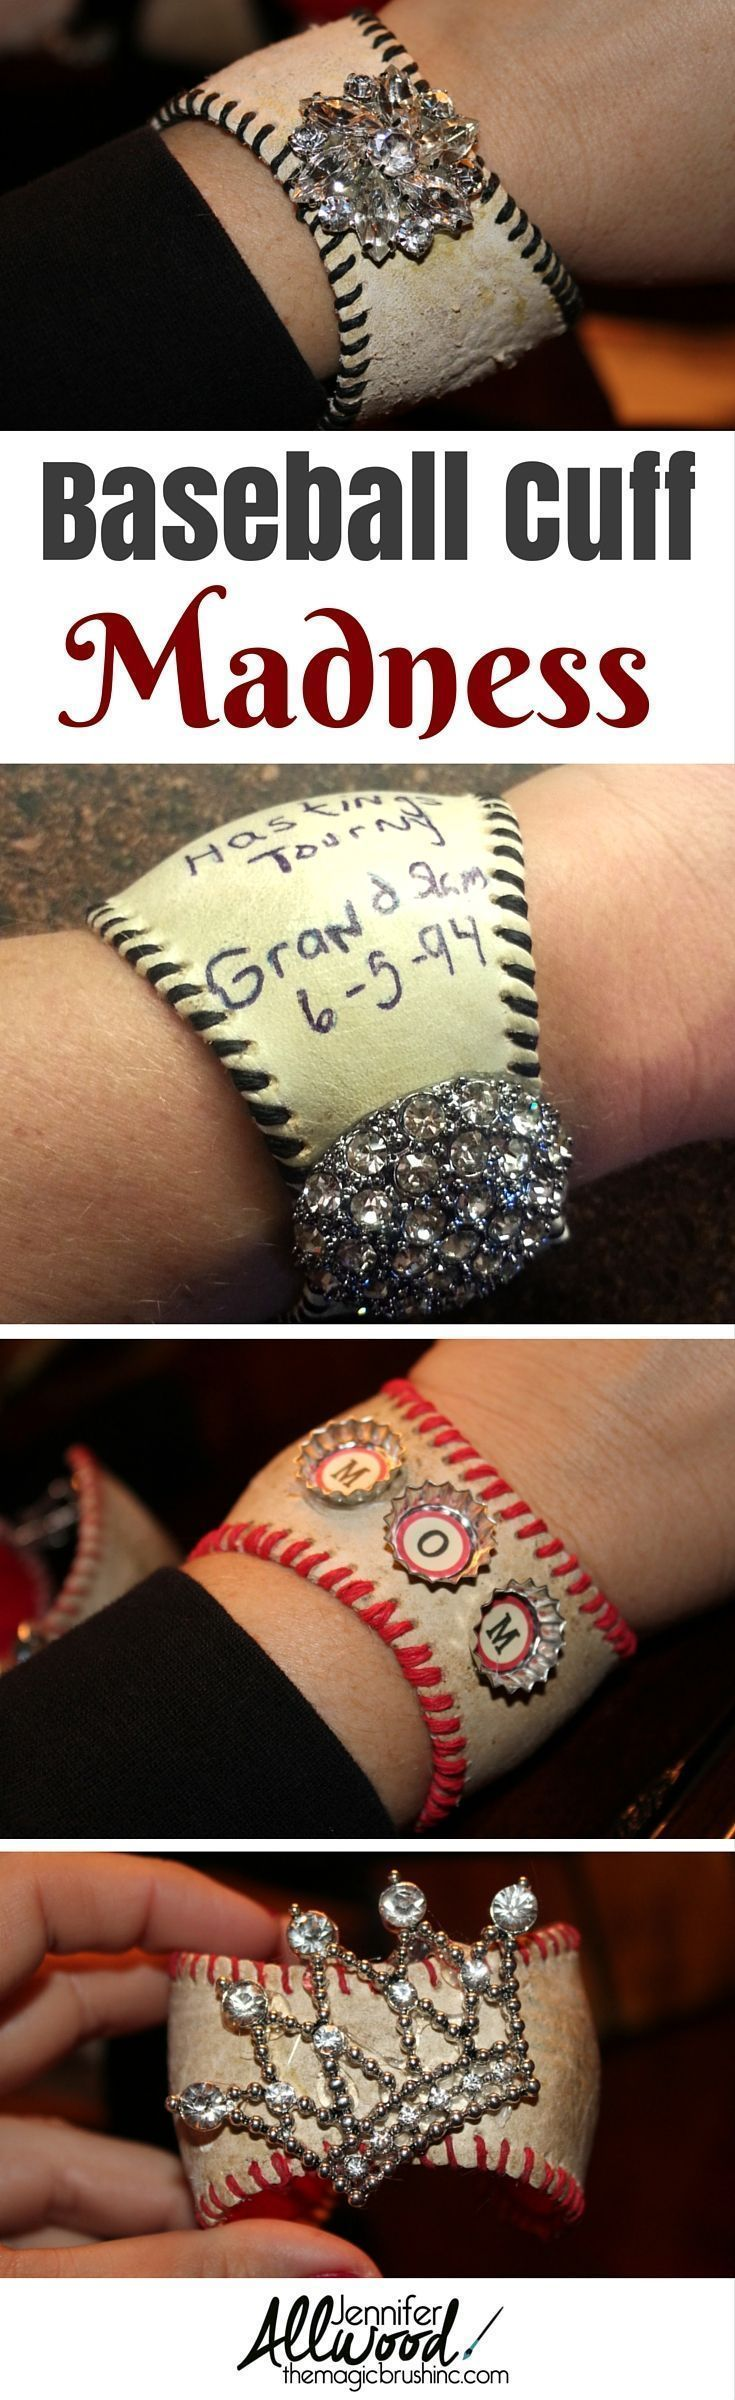 Baseball cuff madness! Add a little bling or turn a momentous game ball into a treasured piece of jewelry!  Great for baseball fans and basemall moms! More DIY Craft projects by Jennifer Allwood #jenniferallwood